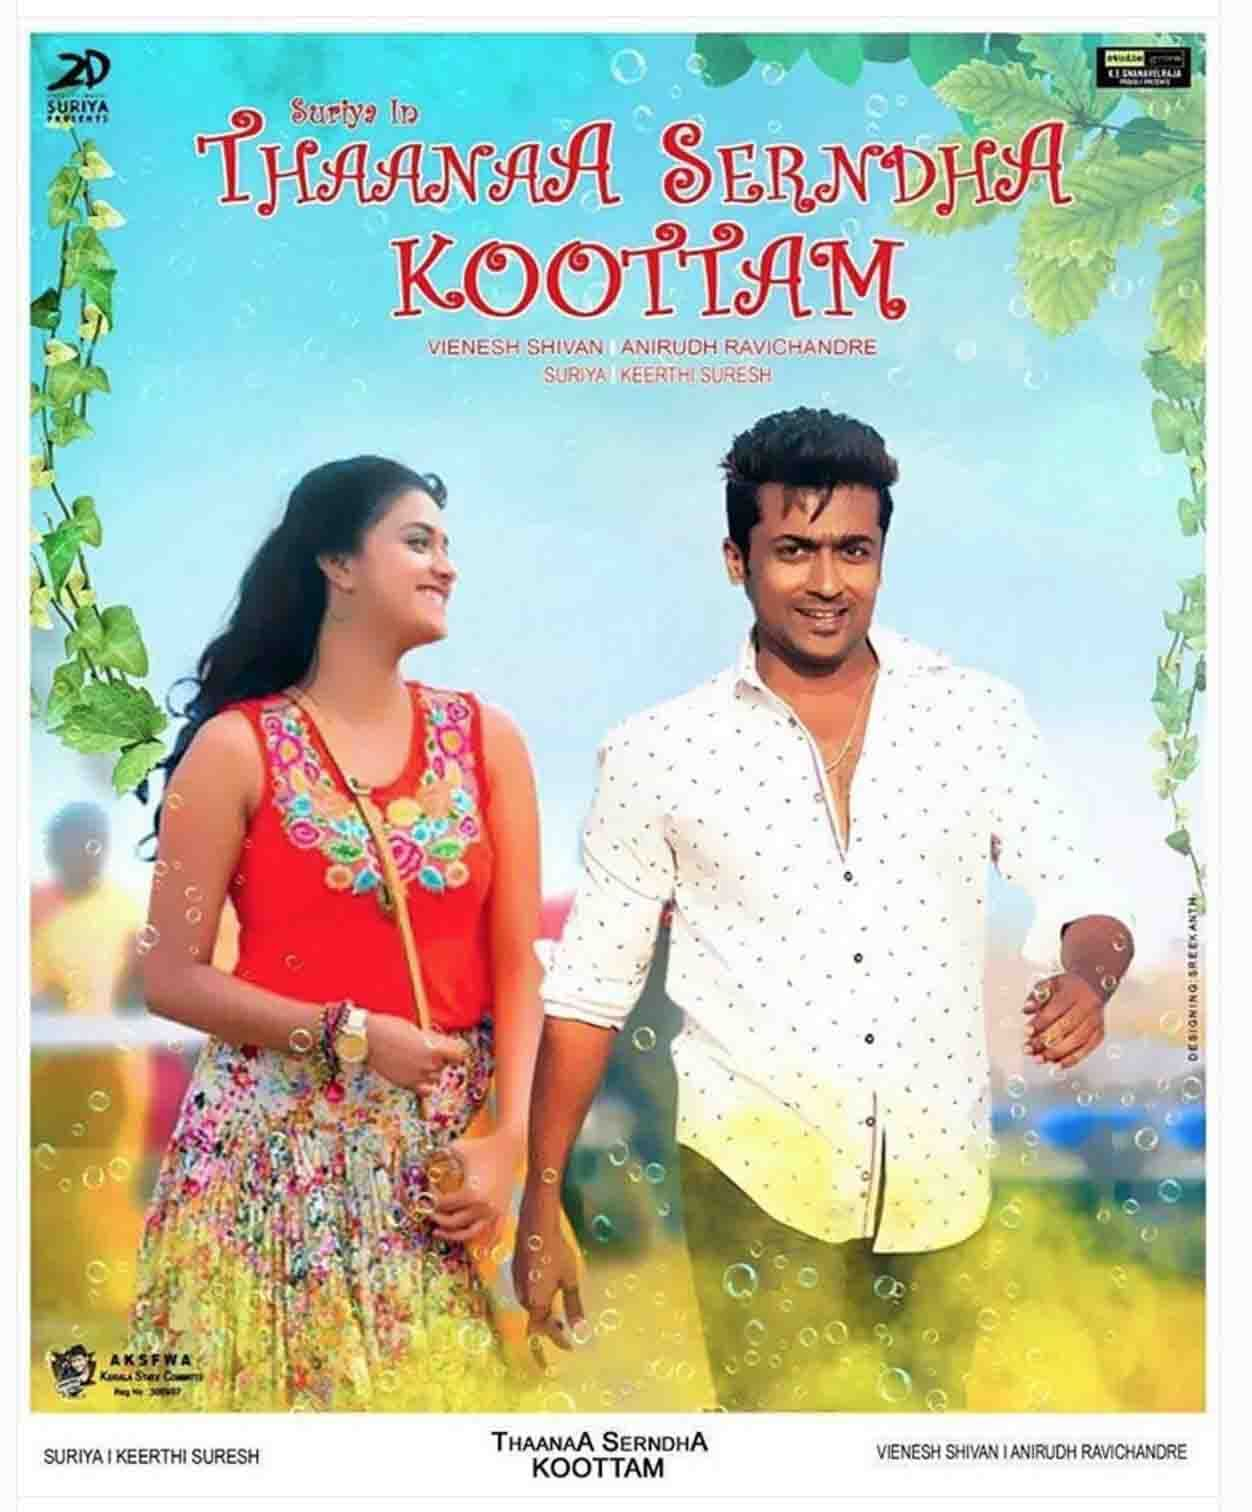 Thaanaa Serndha Koottam Tsk Tamil Movie Mp3 Songs Out Now Download Link Https Starmusiqz Com Thaana Serndha Kootam Songs Album Songs Mp3 Song